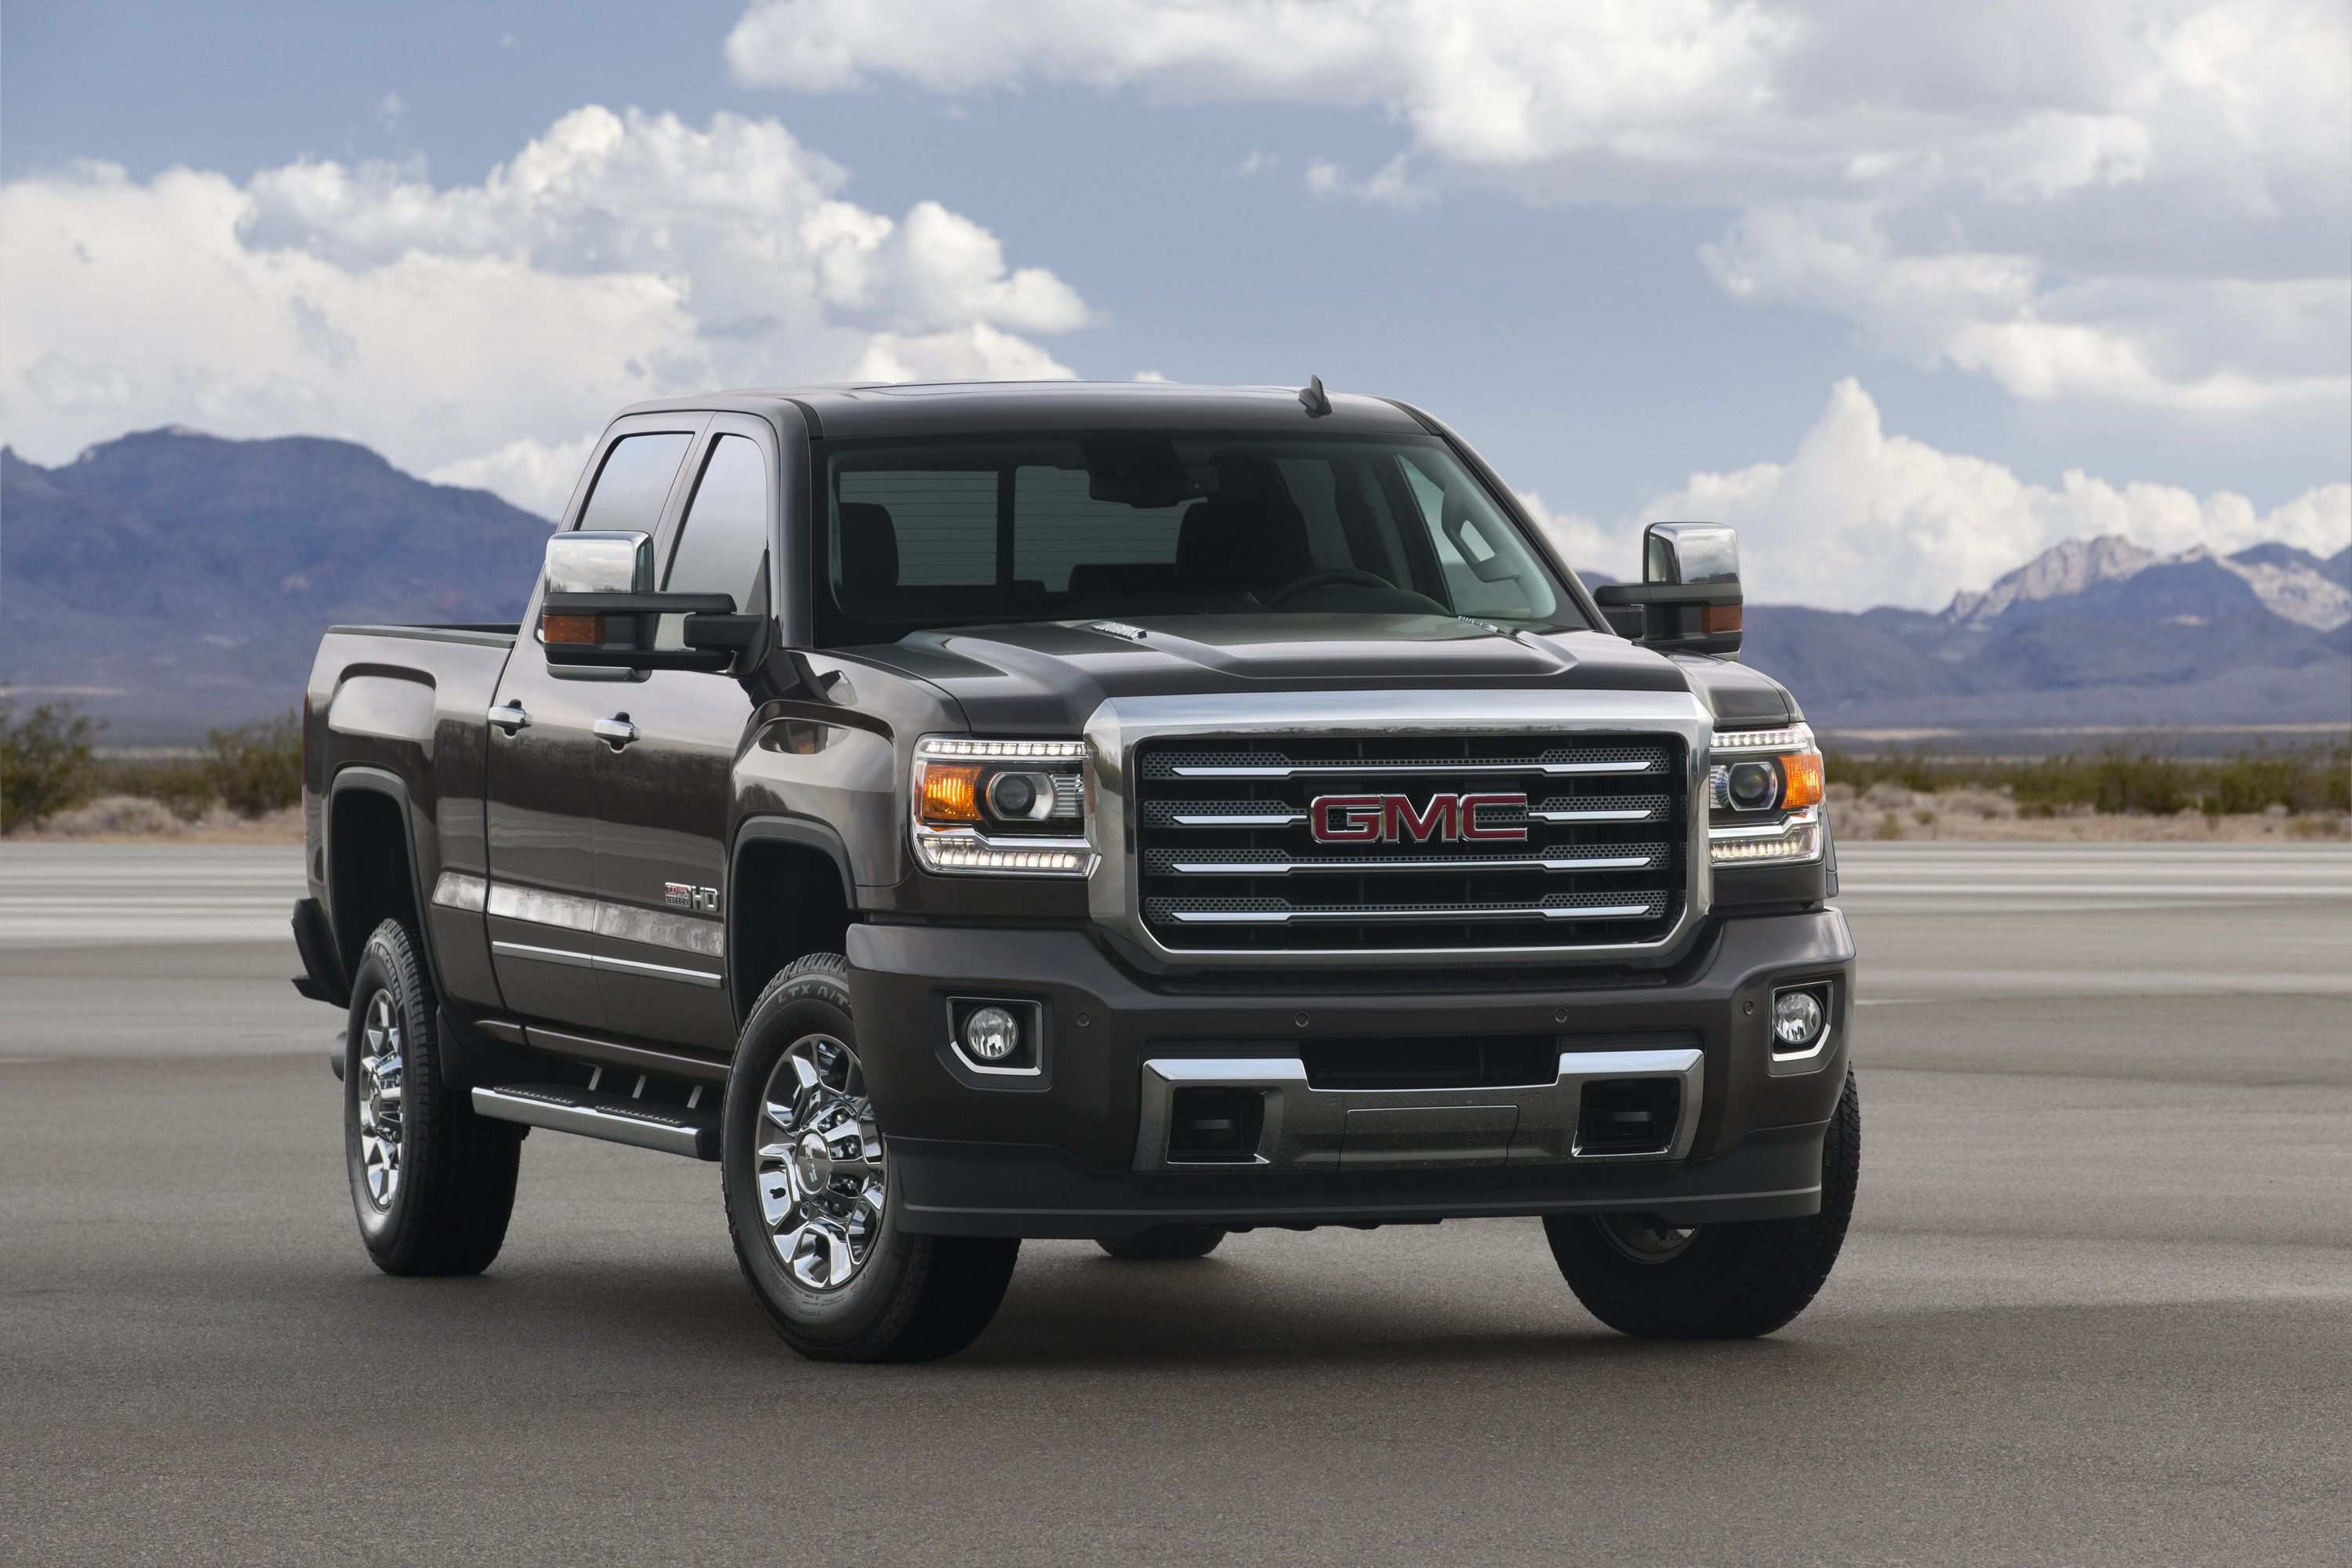 28 Concept of 2020 Gmc 3500 Release Date New Review by 2020 Gmc 3500 Release Date